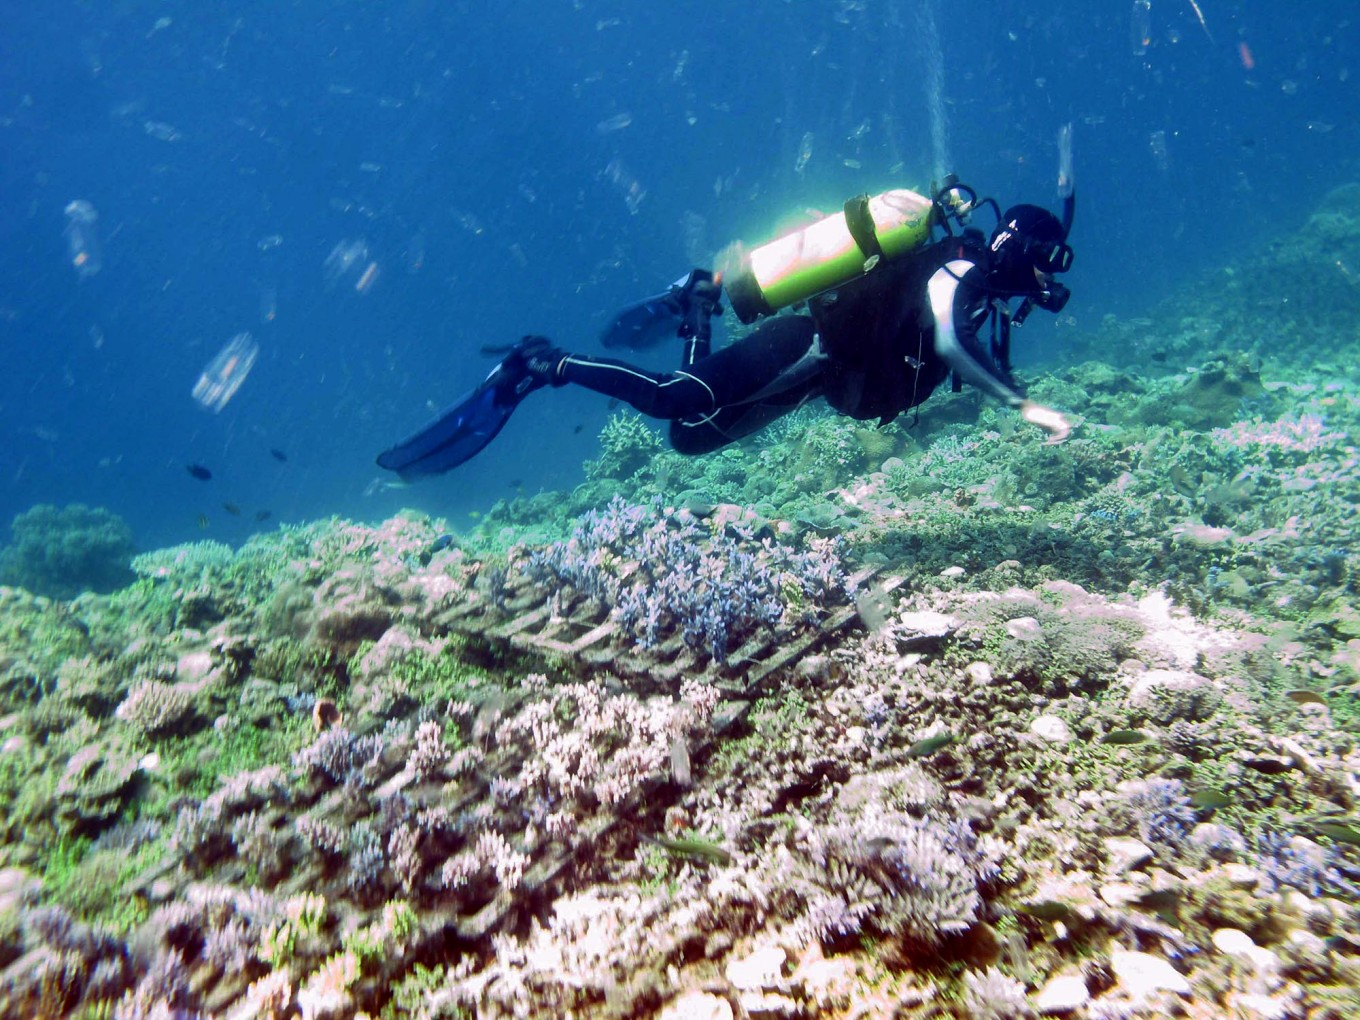 A diver checks the condition of the stemmed reefs. JP/Suherdjoko